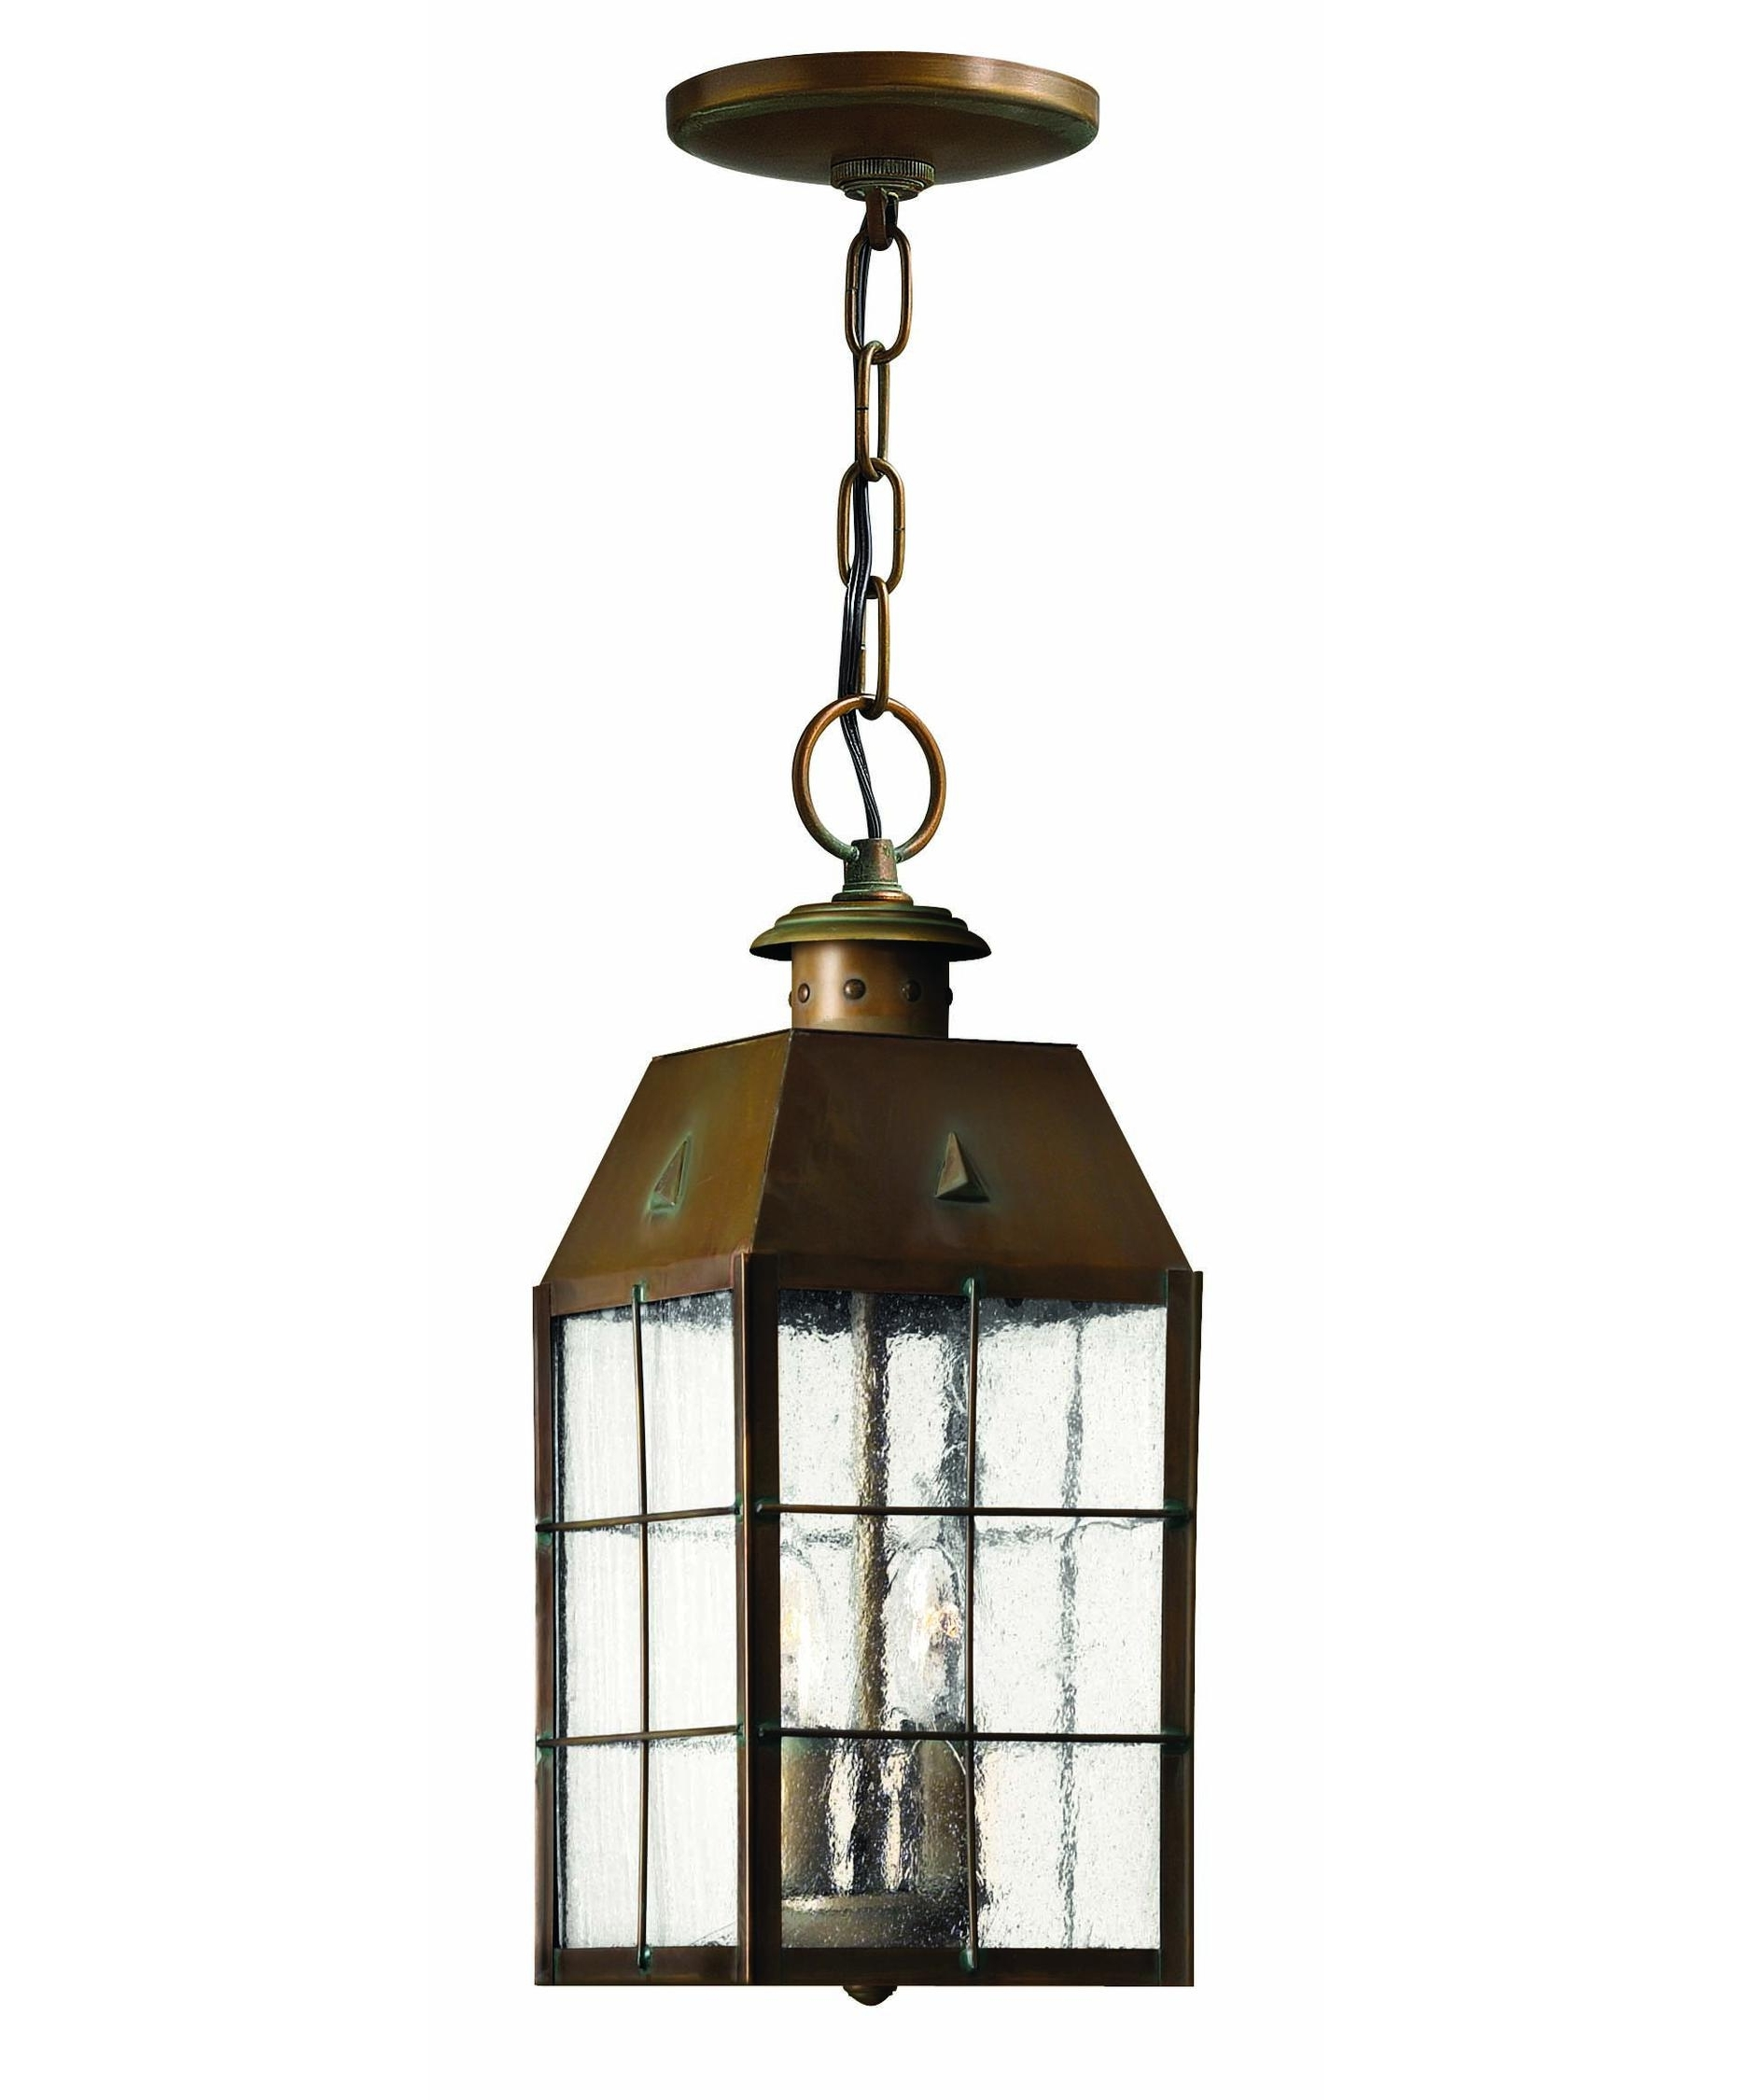 Widely Used Hinkley Lighting 2372 Nantucket 6 Inch Wide 2 Light Outdoor Hanging Within Nantucket Outdoor Lanterns (View 4 of 20)